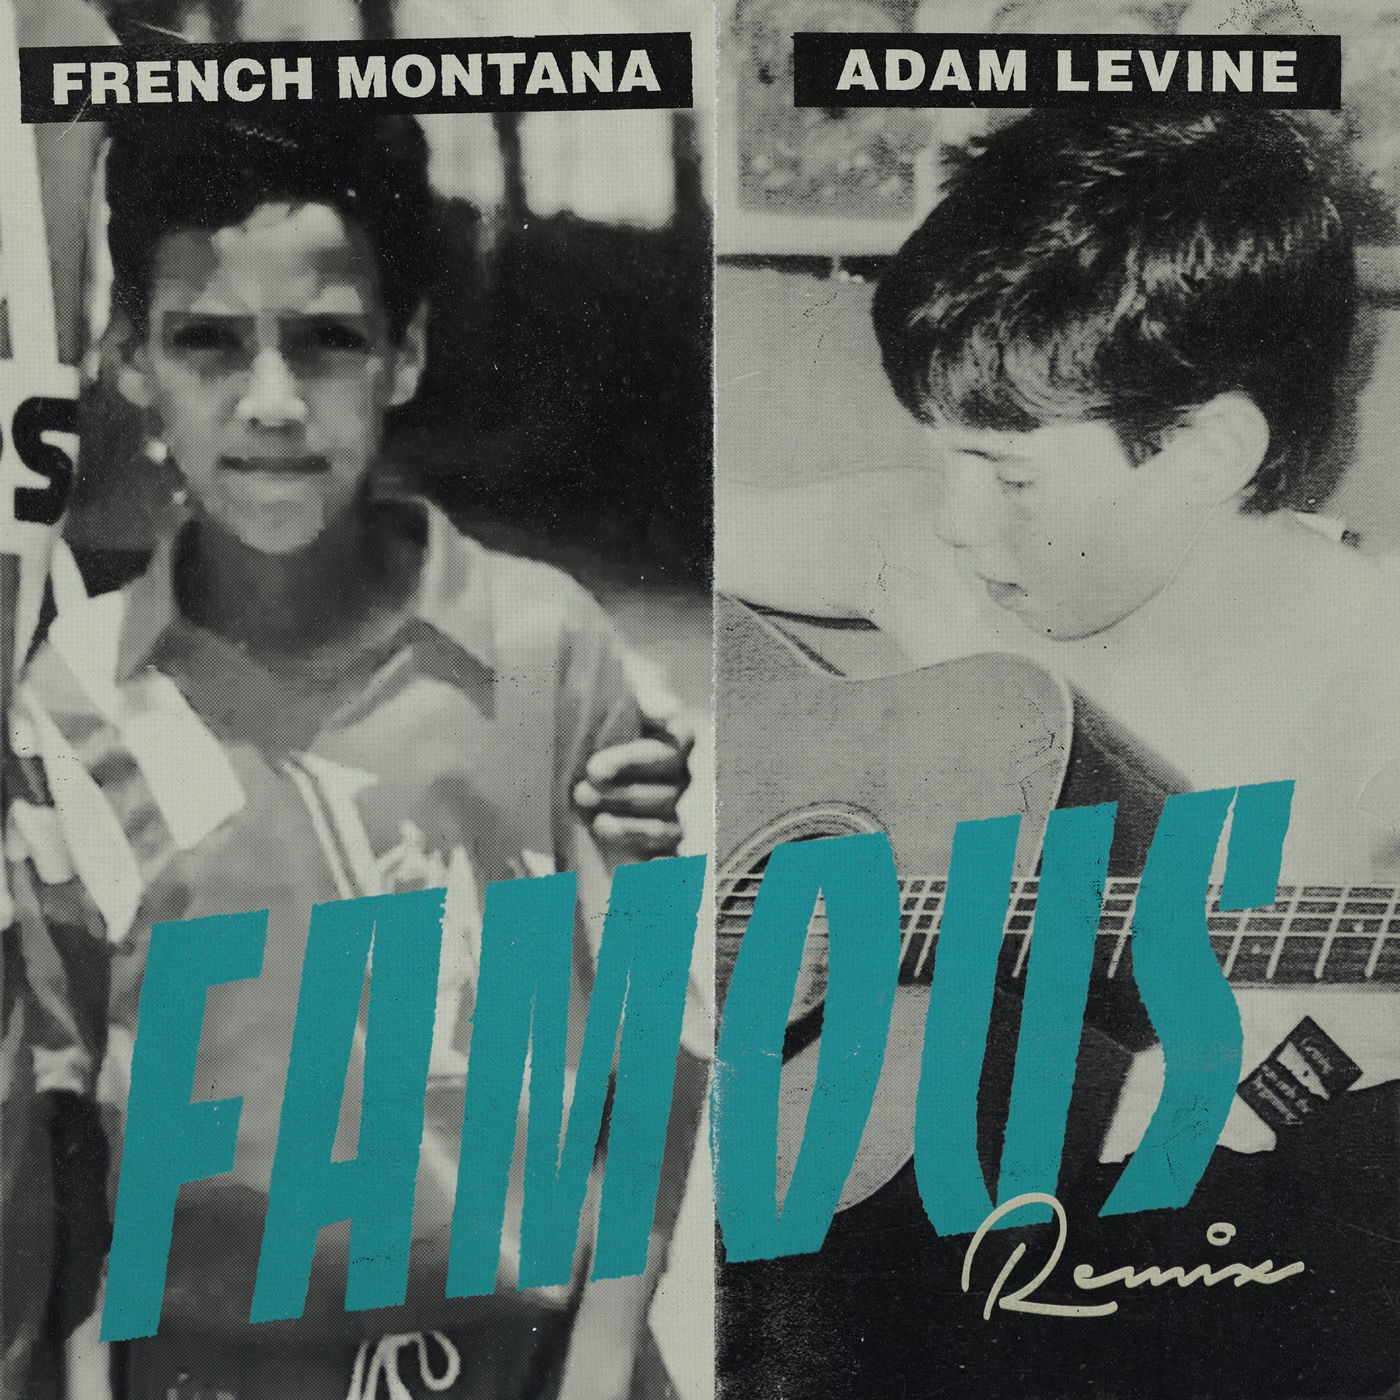 DownloadFrench Montana ft. Adam Levine Famous (Remix) Mp3 Download